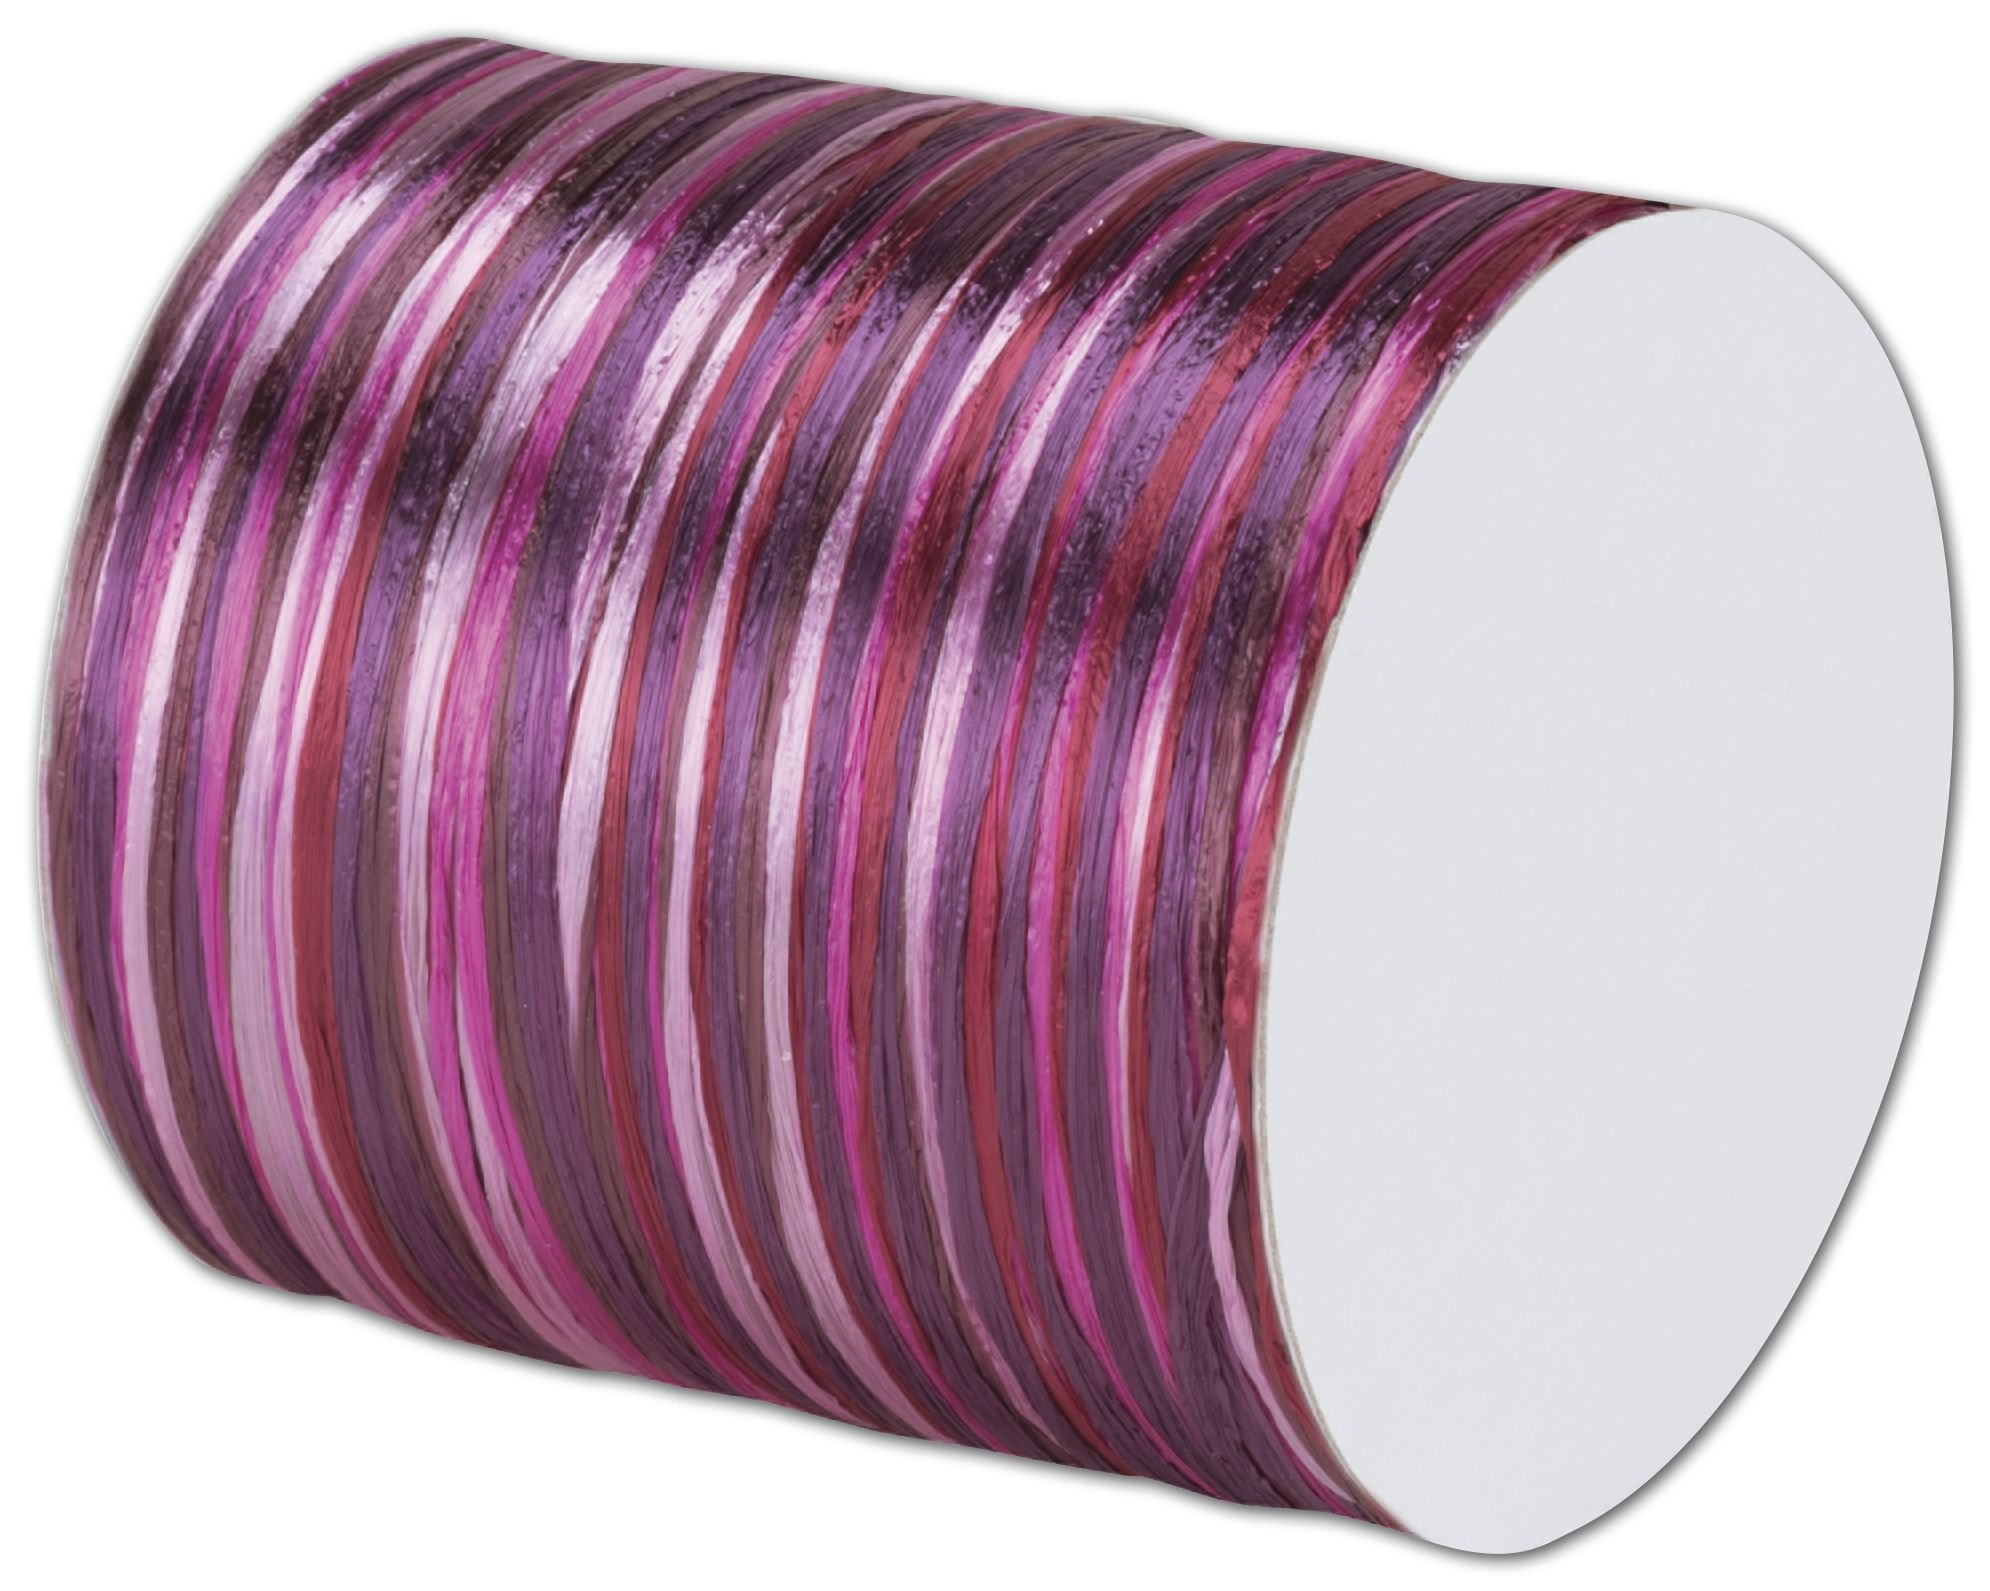 Raffia Pearl Cerise Multi Ribbon 1/4'' x 55 Yds (2/pack) - BOWS-138-606 by Miller Supply Inc